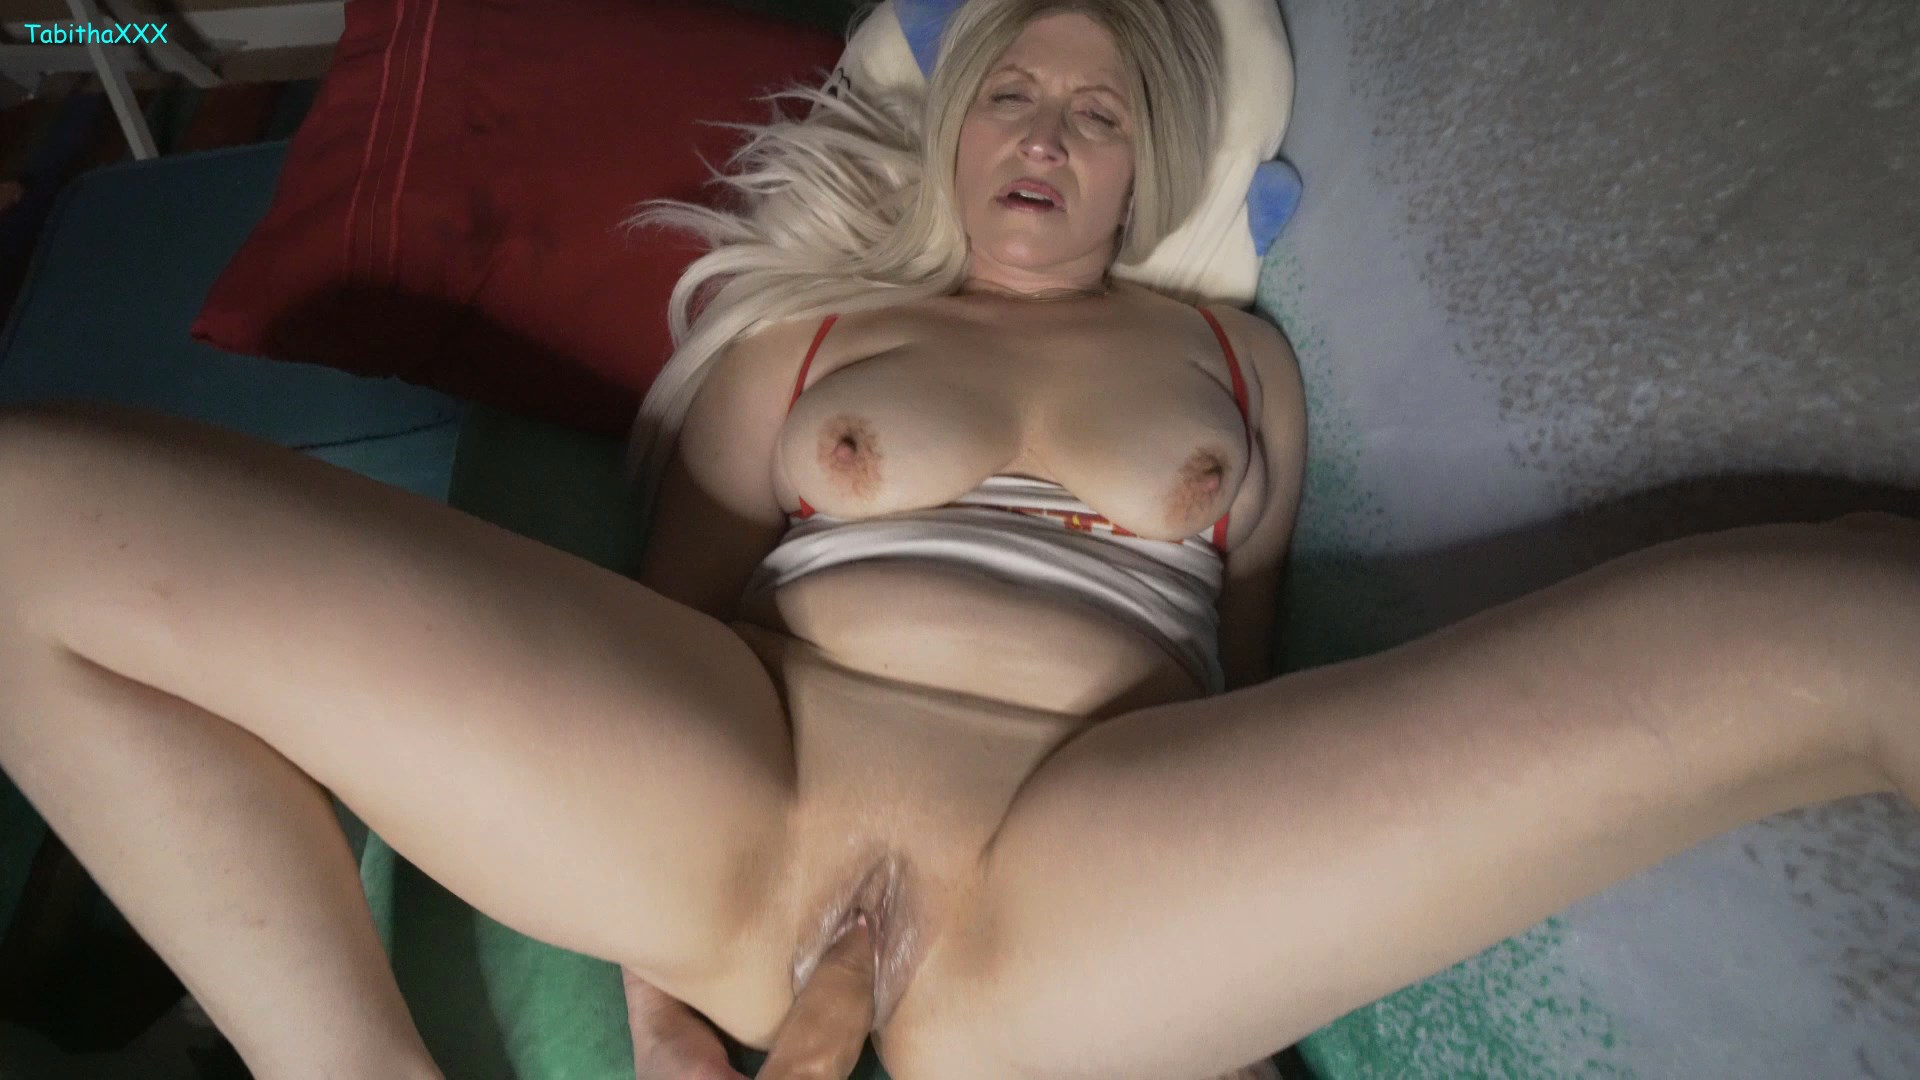 TabithaXXX - MomSon Movie Night Turns Naughty